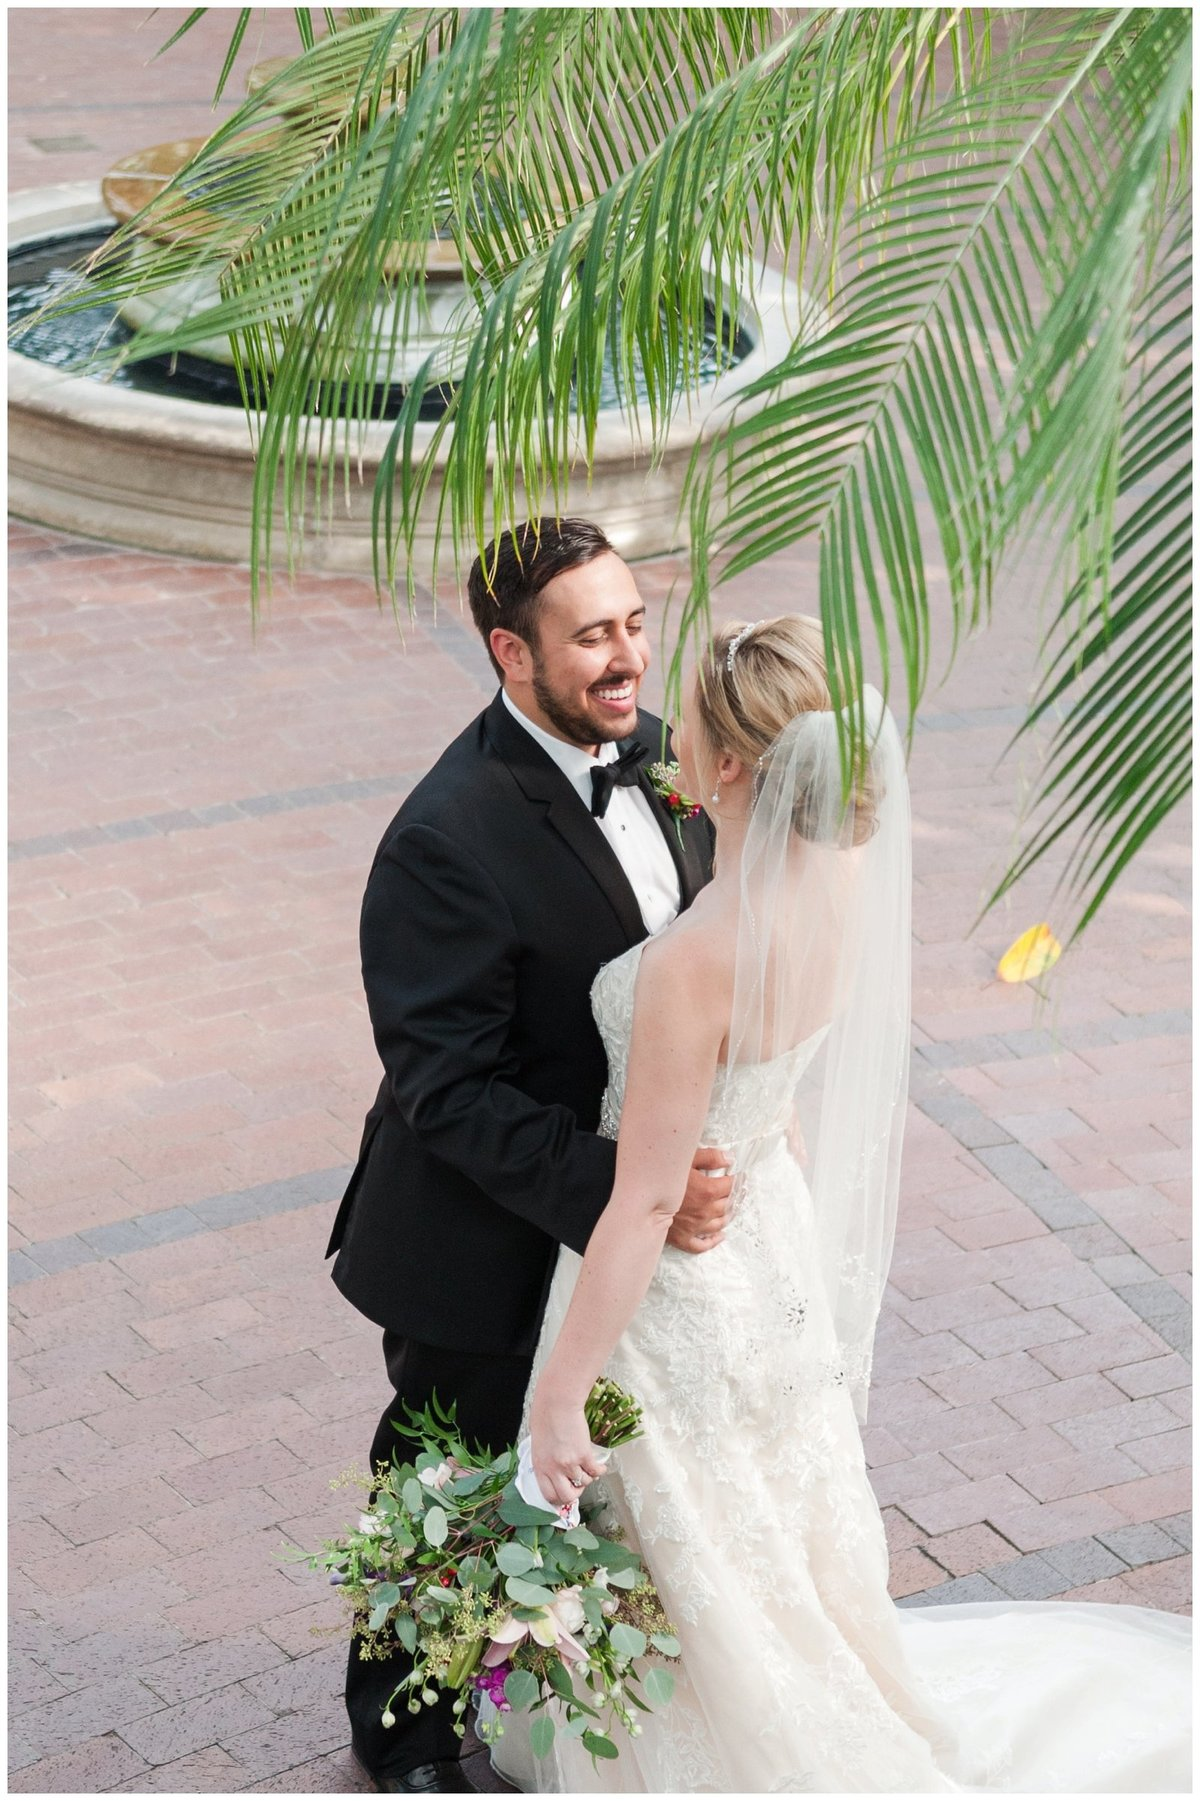 Franklin Park Conservatory Wedding The Palm House Bridal Garden Grove_0036